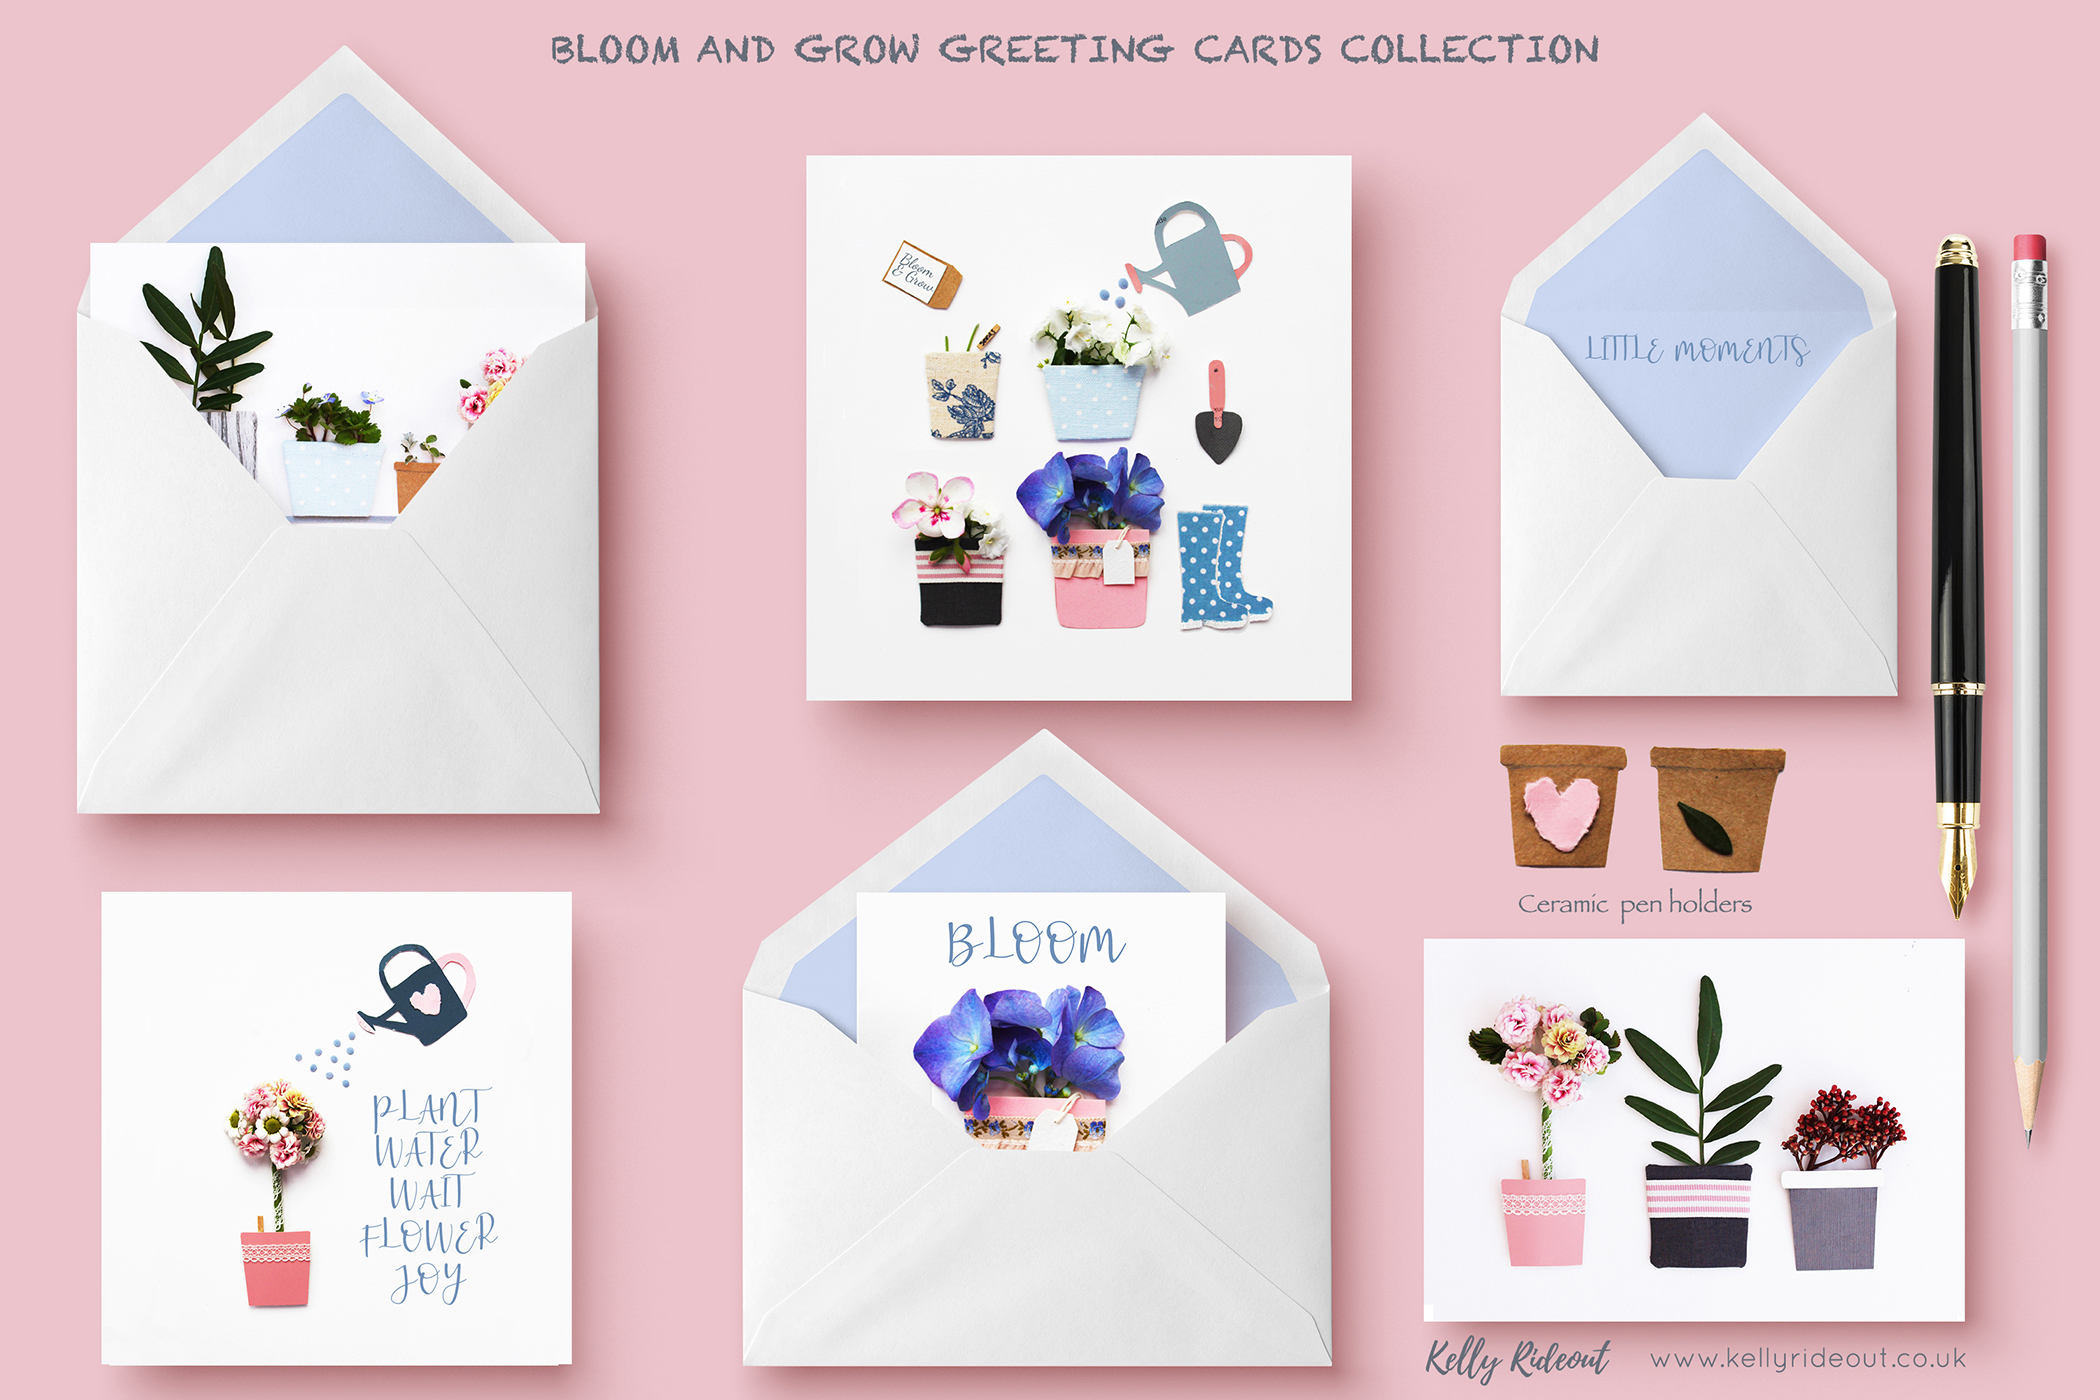 Bloom and Grow Greeting Cards